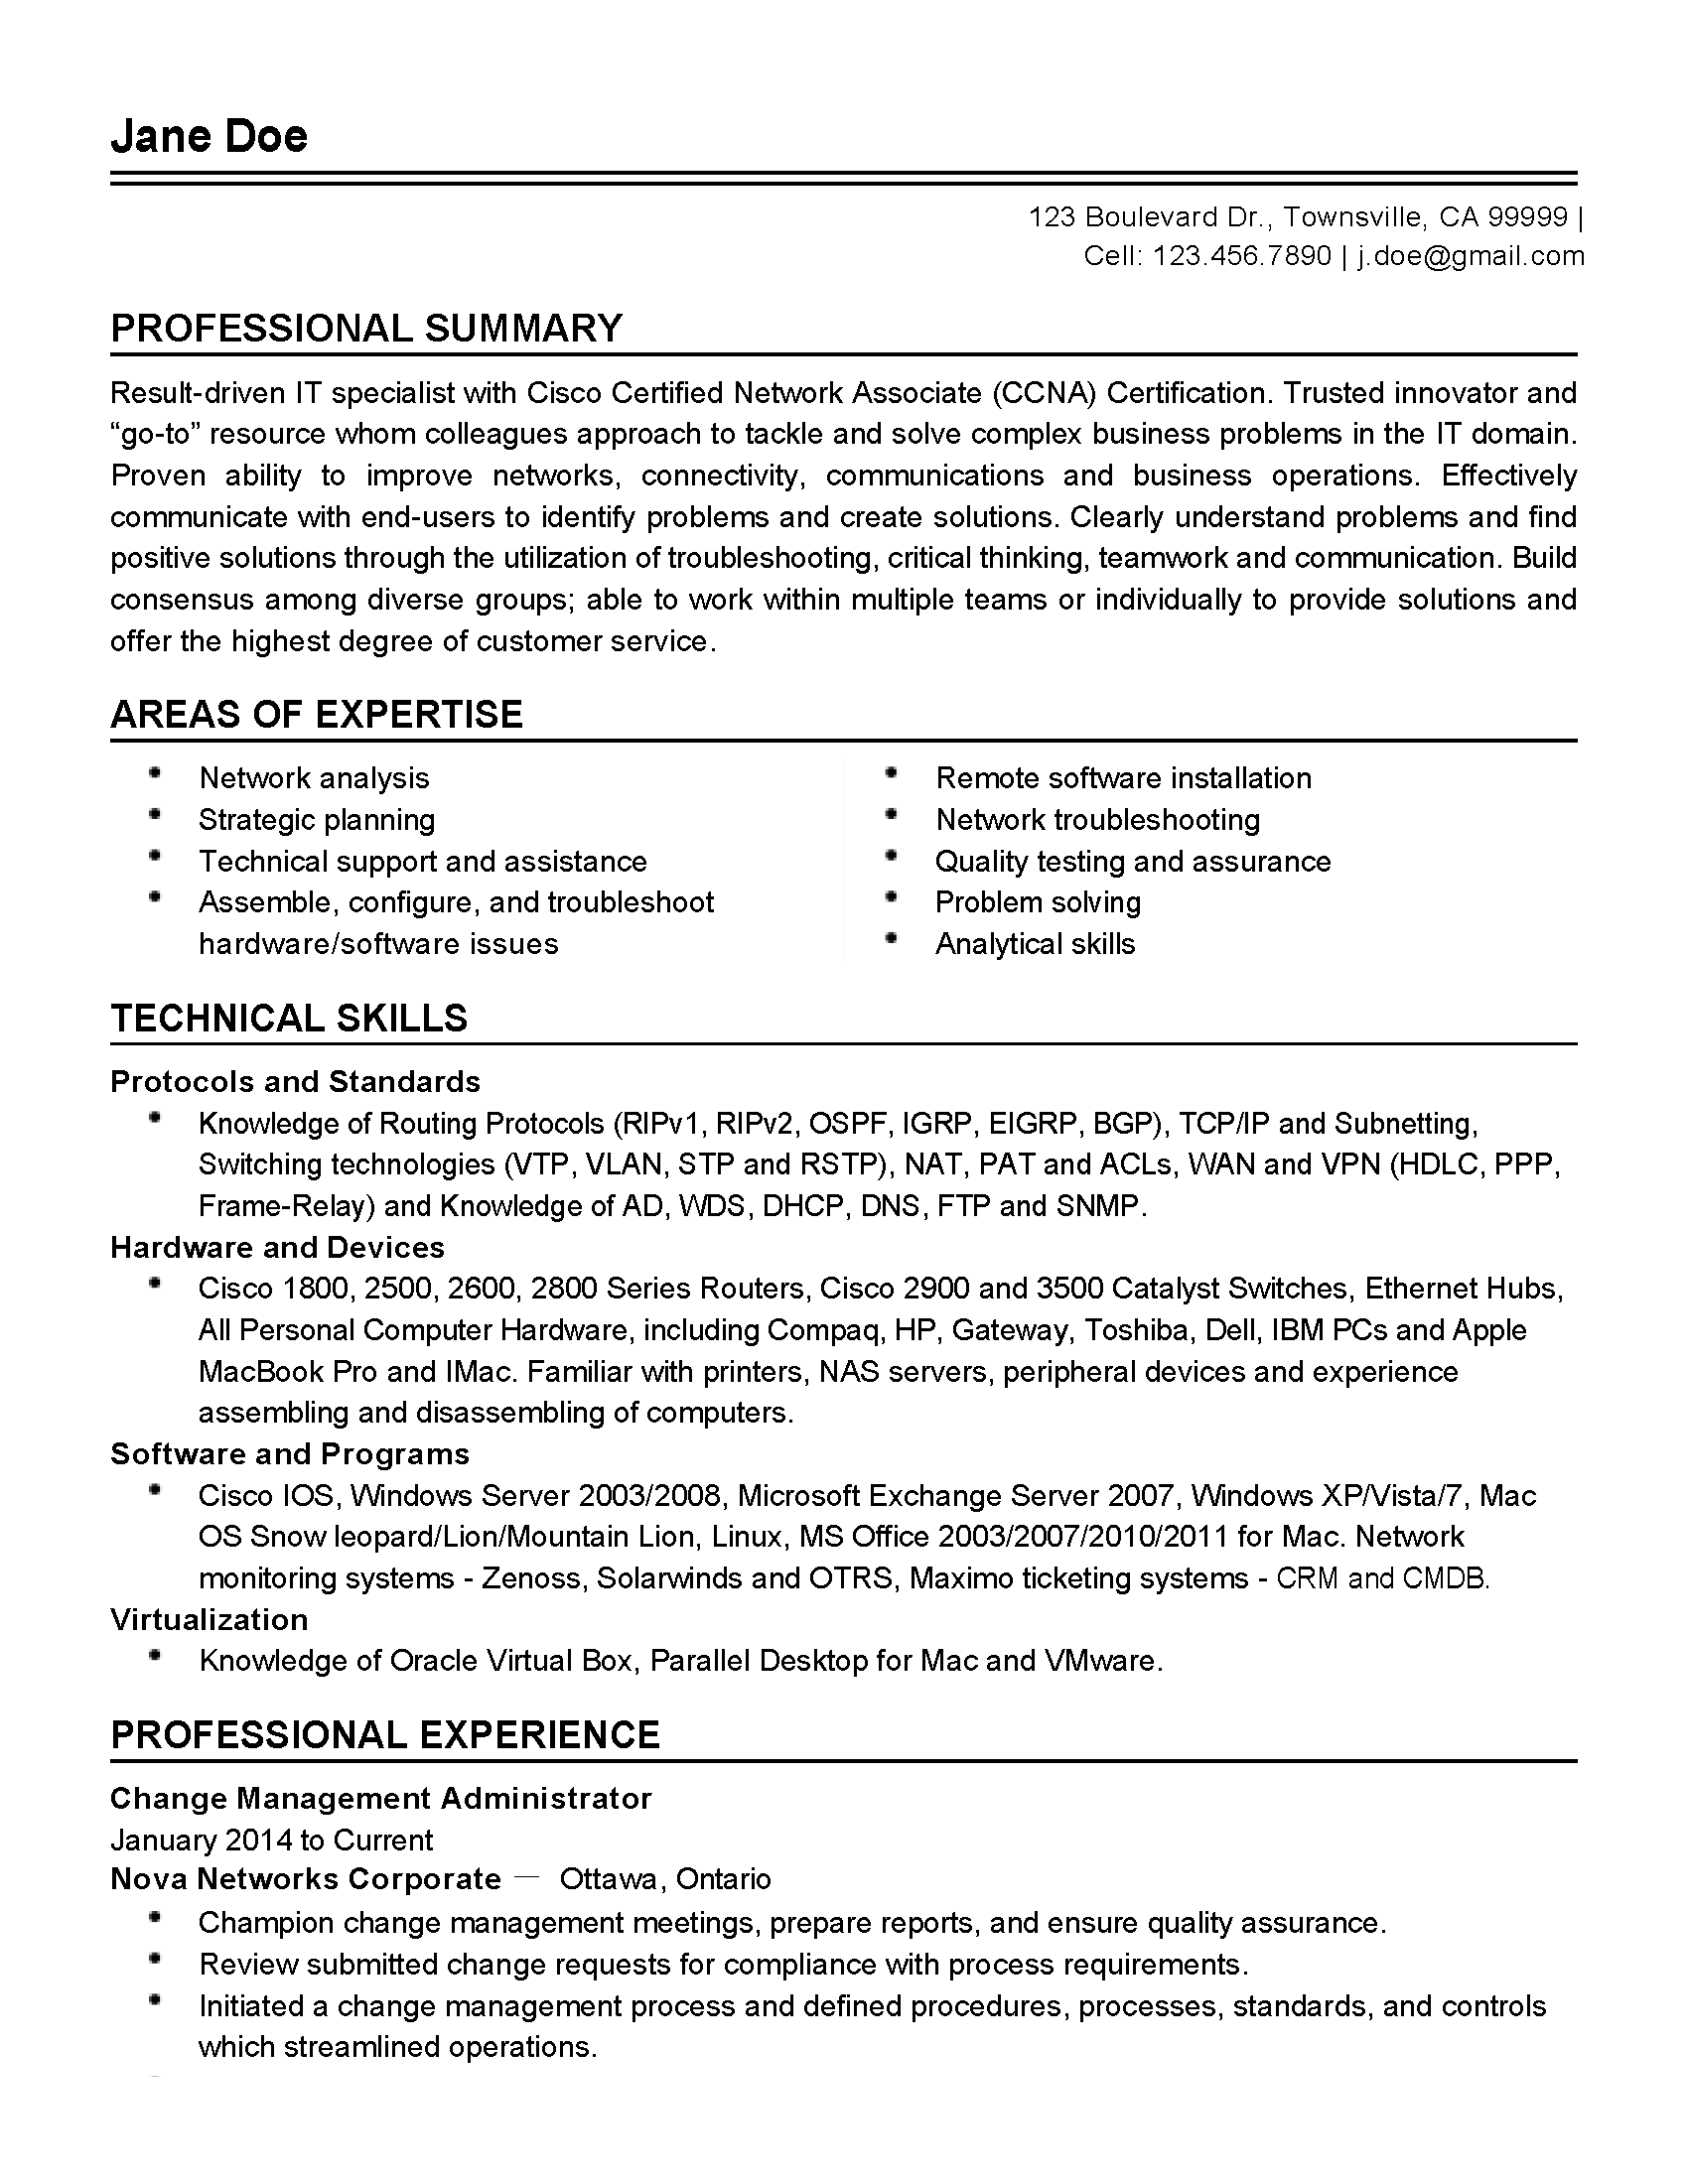 Professional Change Management Administrator Templates to Showcase ...